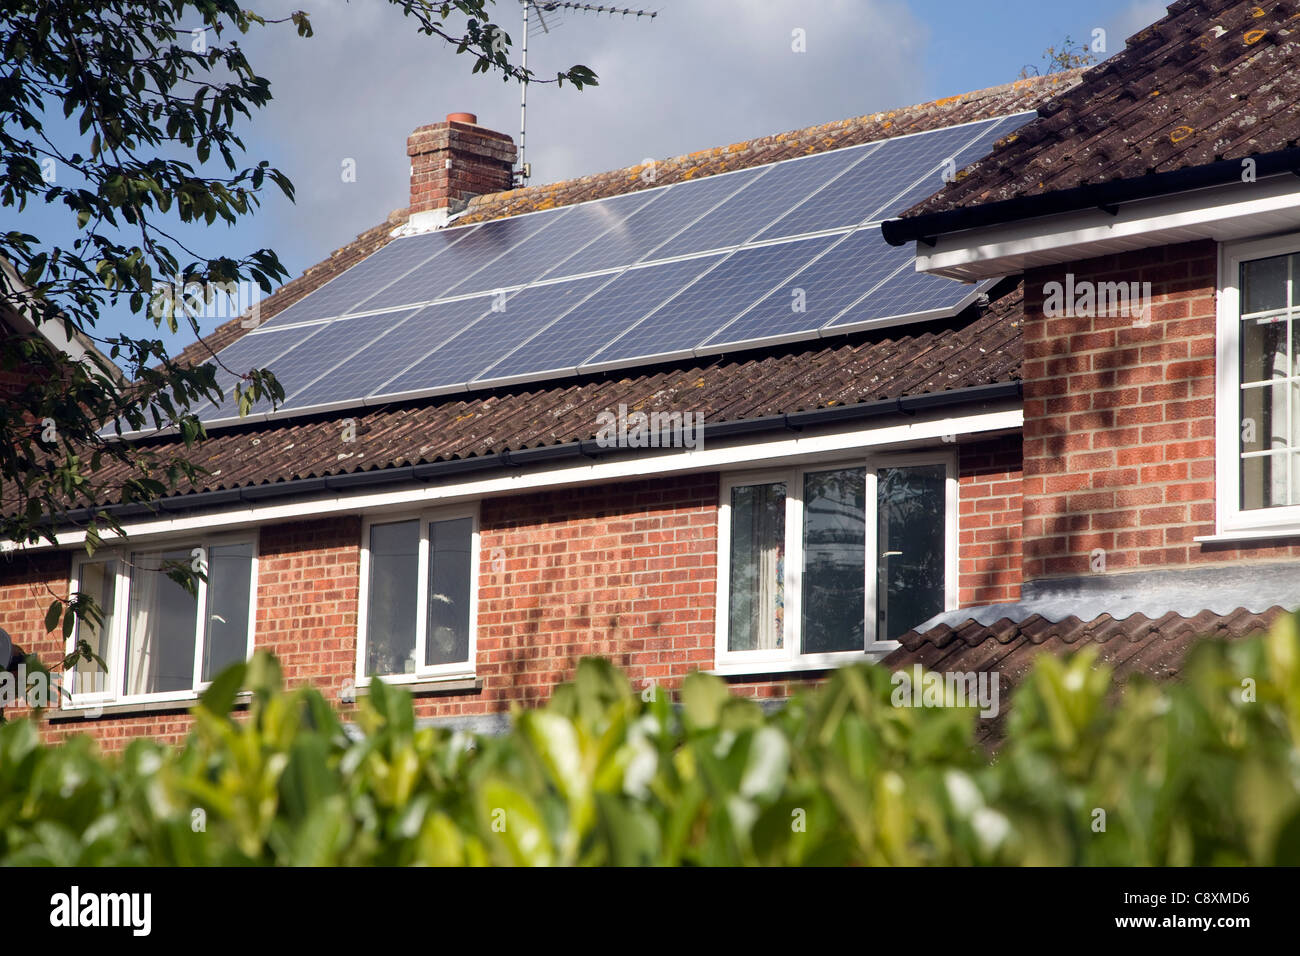 Large array of solar panels on domestic house roof - Stock Image